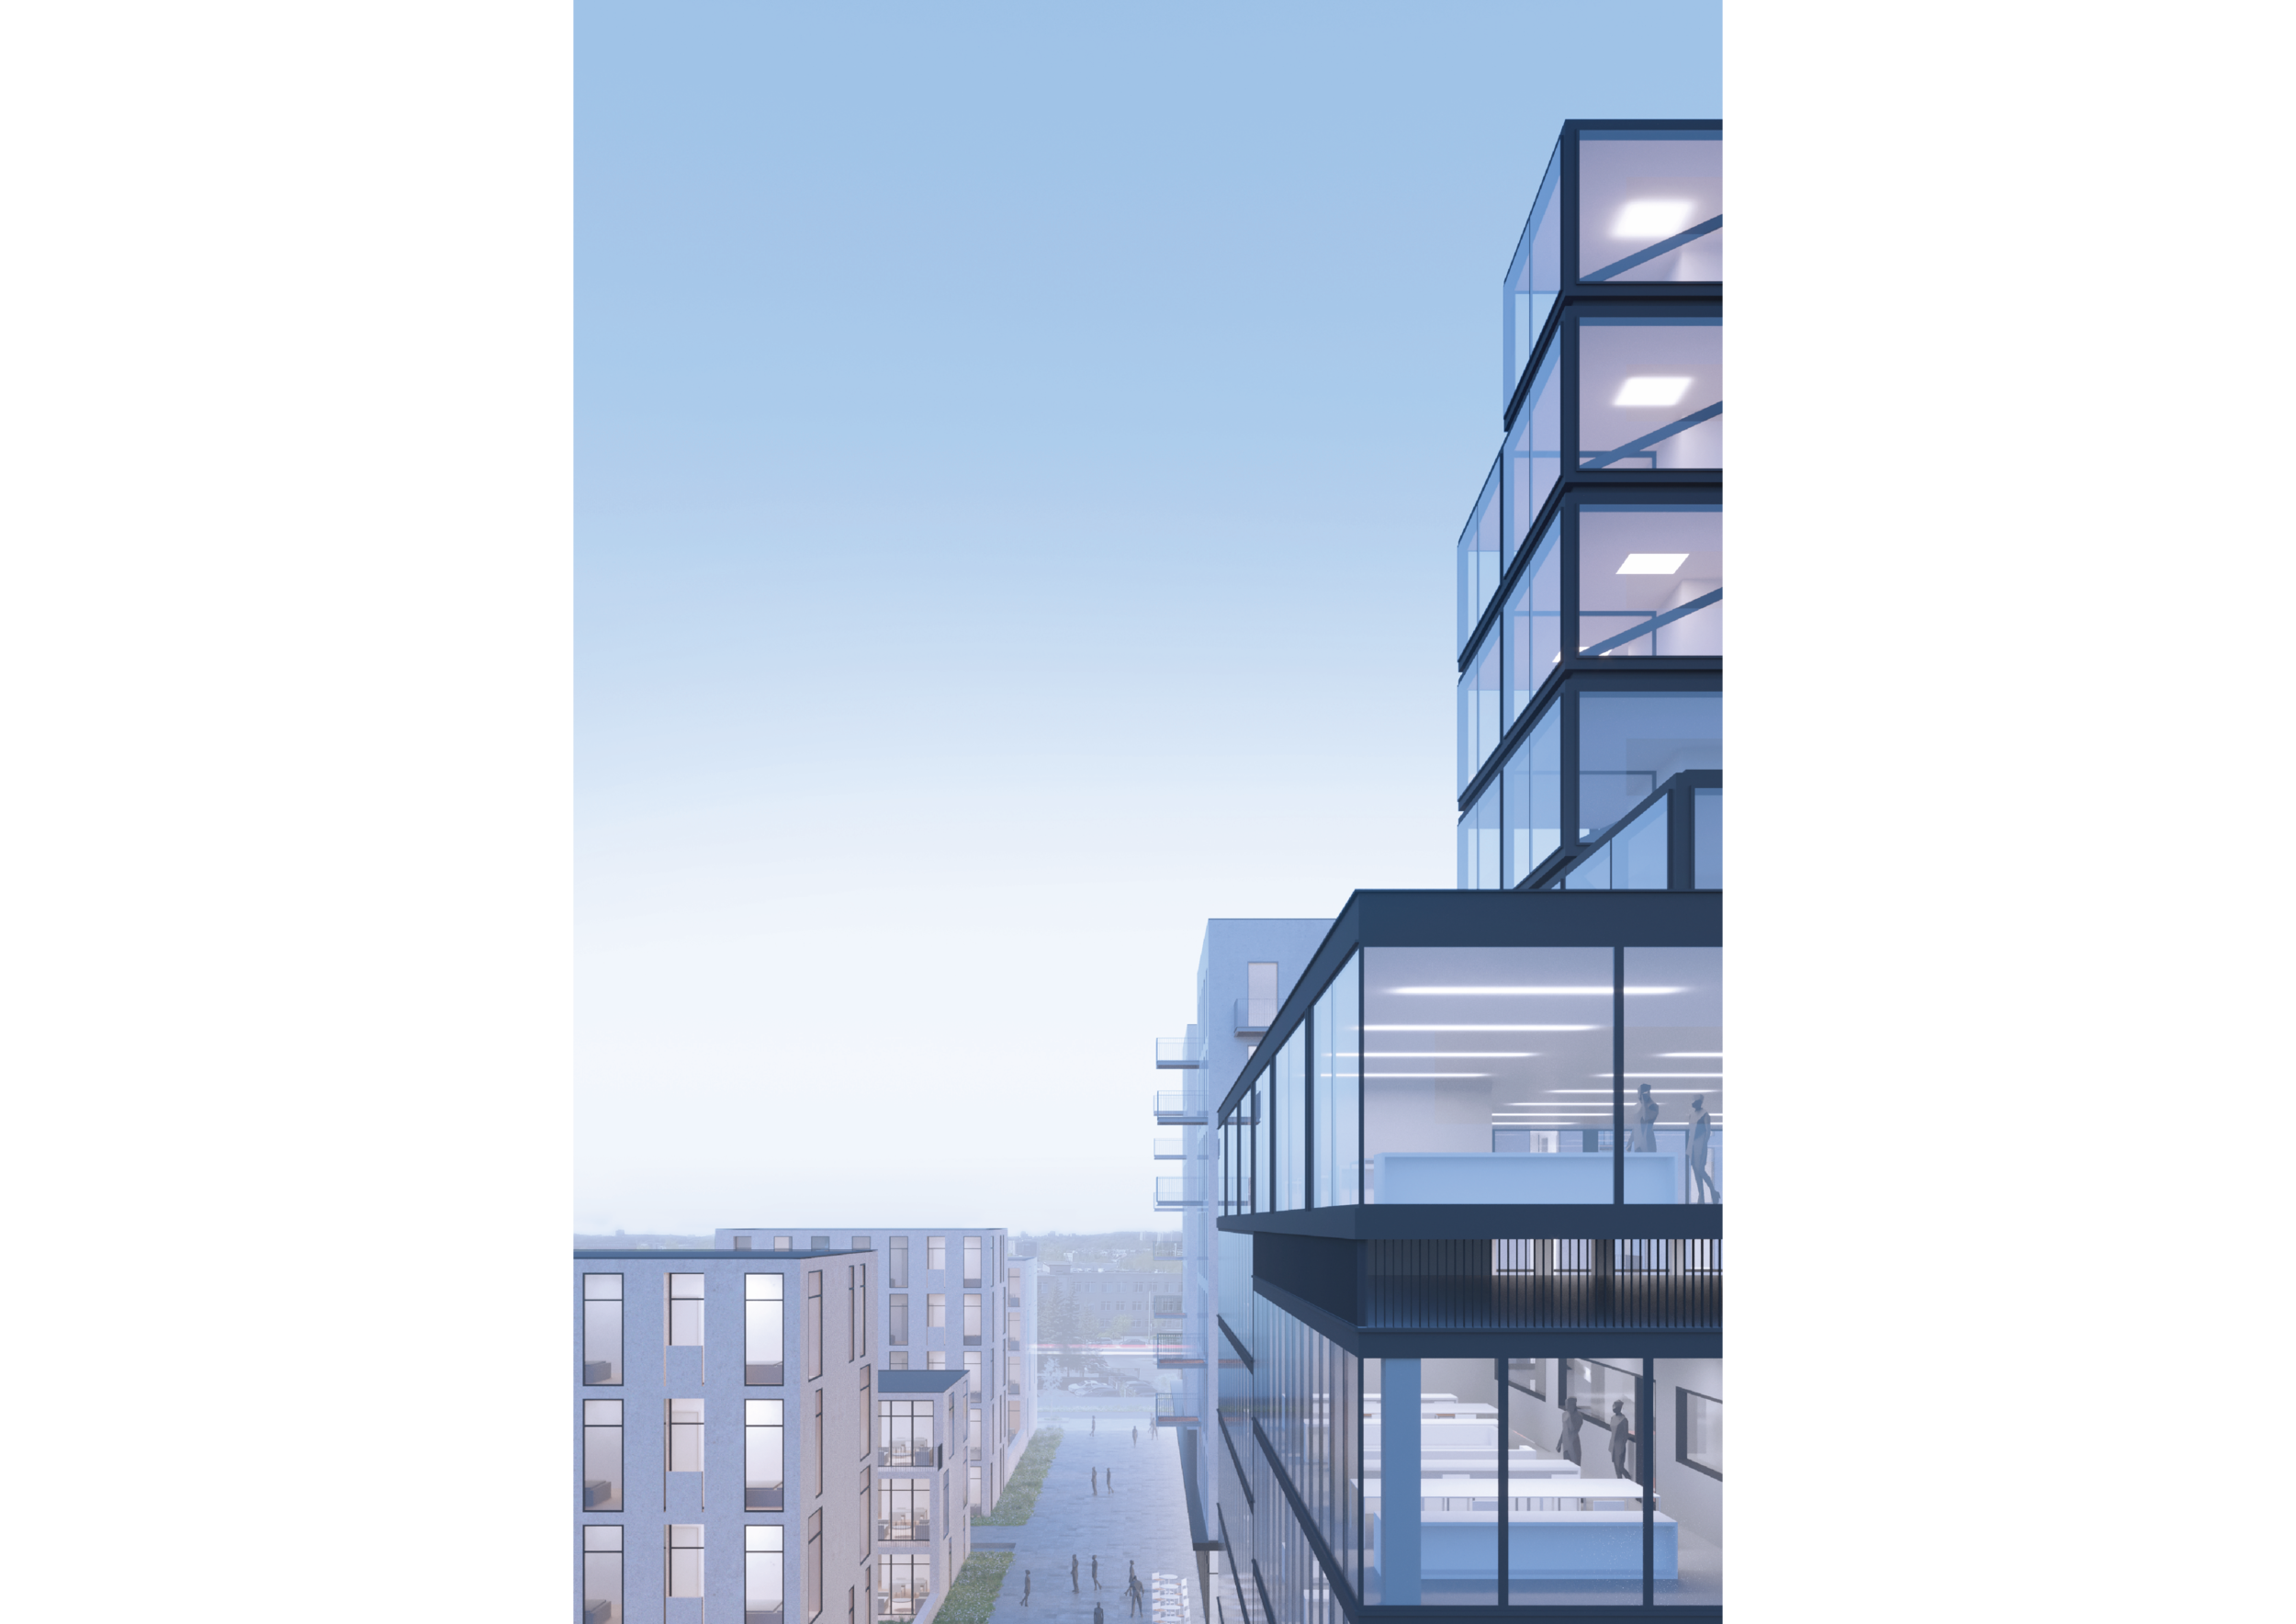 DO ARCHITECTS_MULTIRESIDENTIAL-02.png